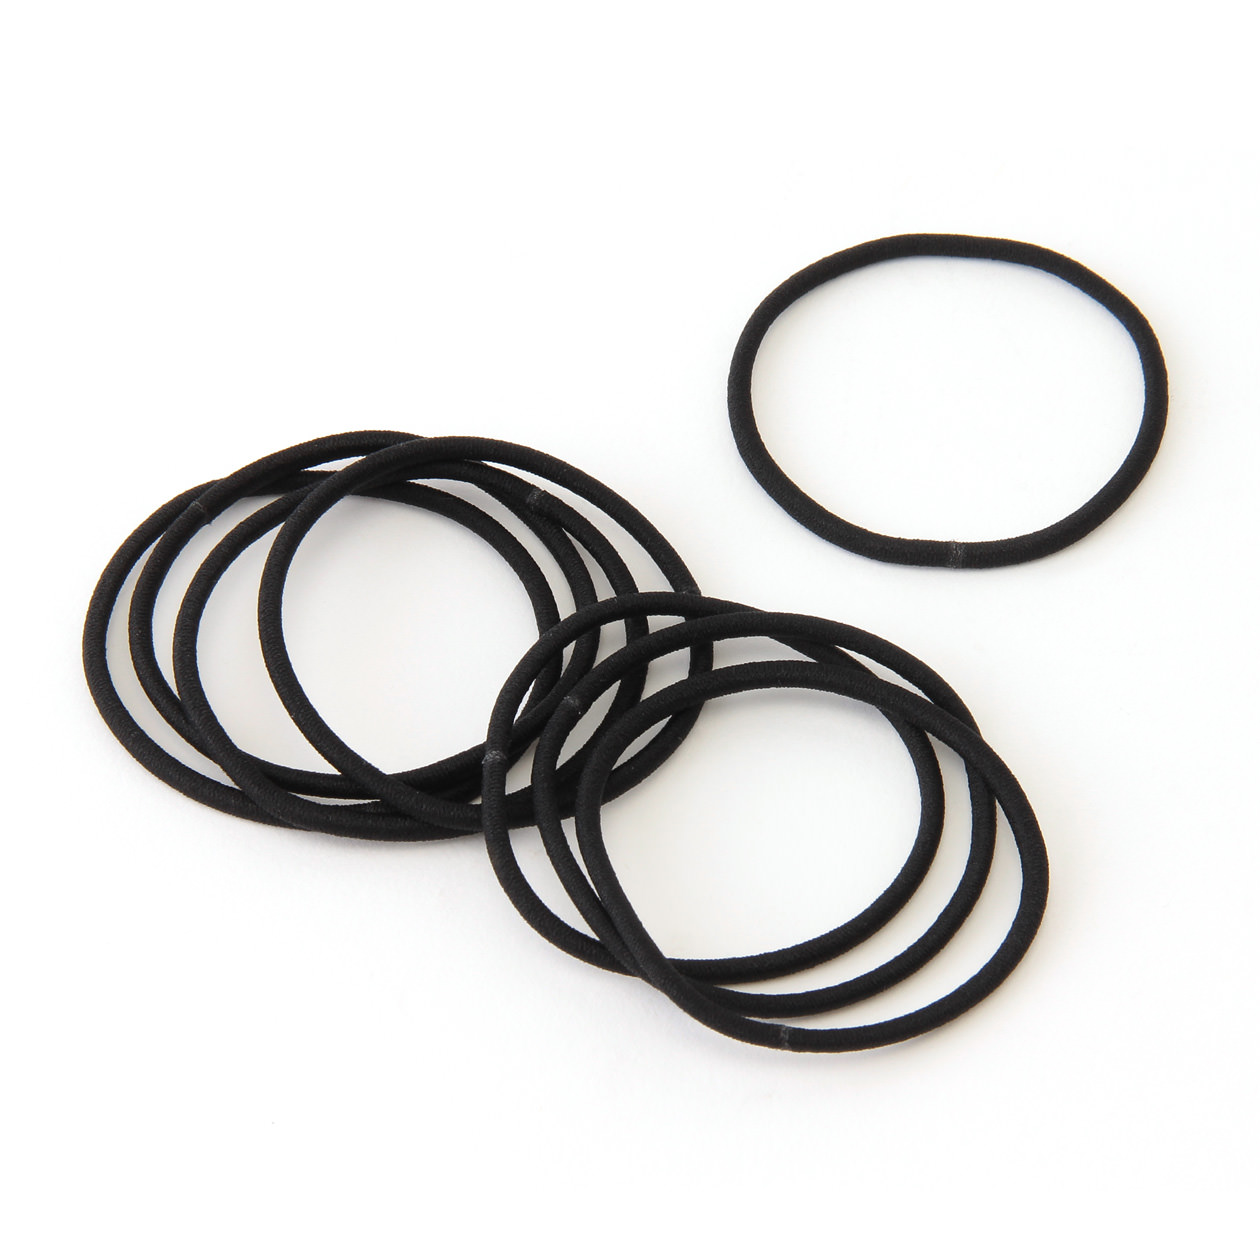 Hair Rubber Band Slim Black 8pcs Muji